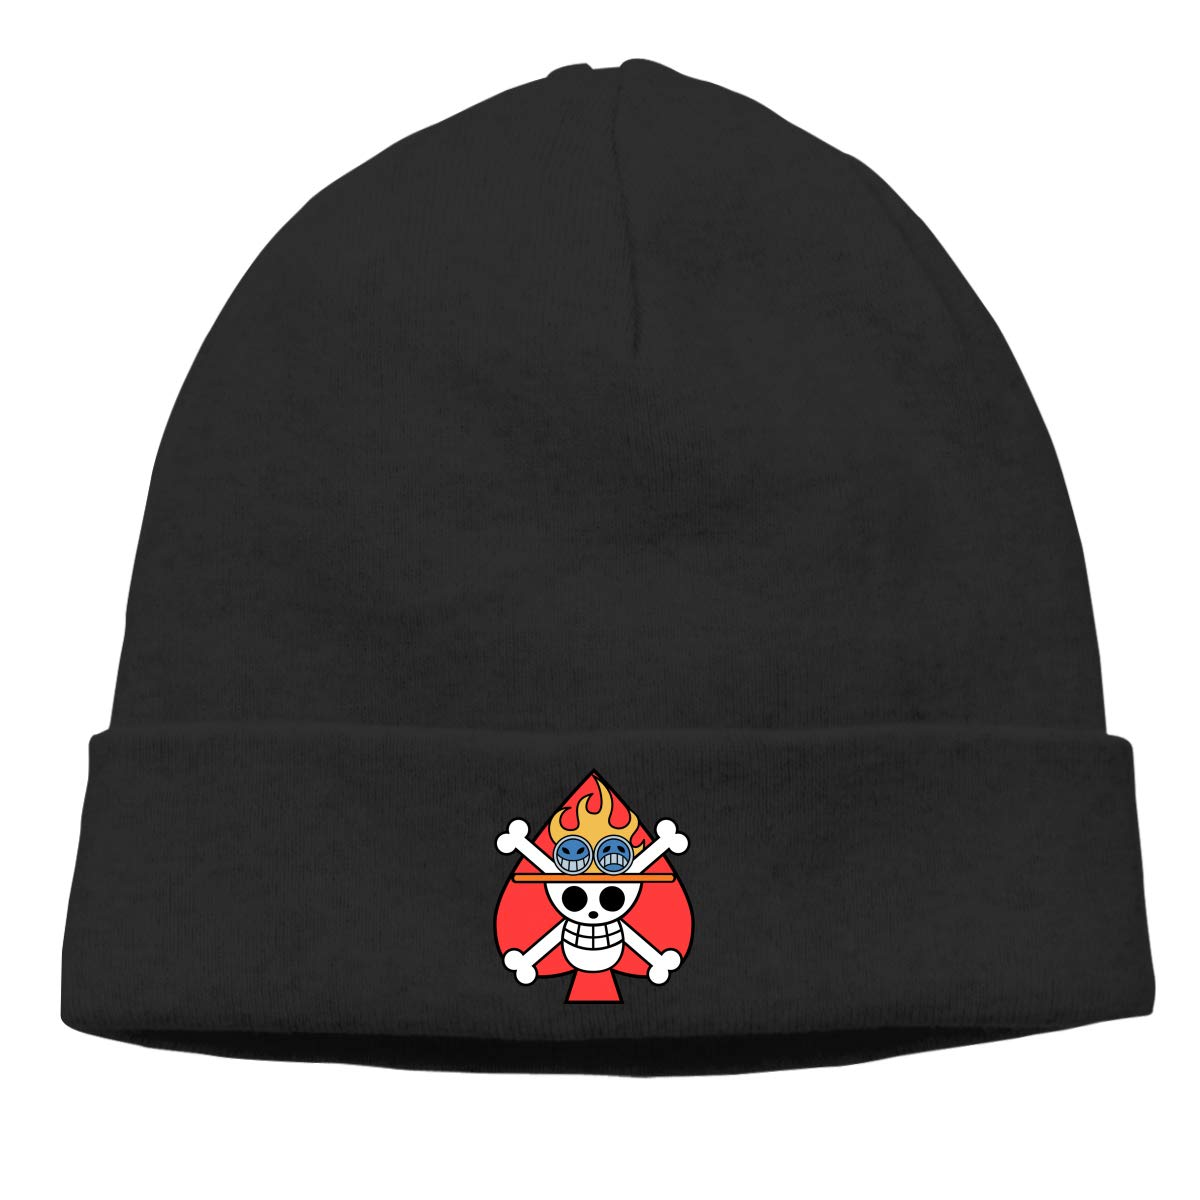 Favourite Pirate Flag Unisex Cuffed Warm Slouch Beanie Hats